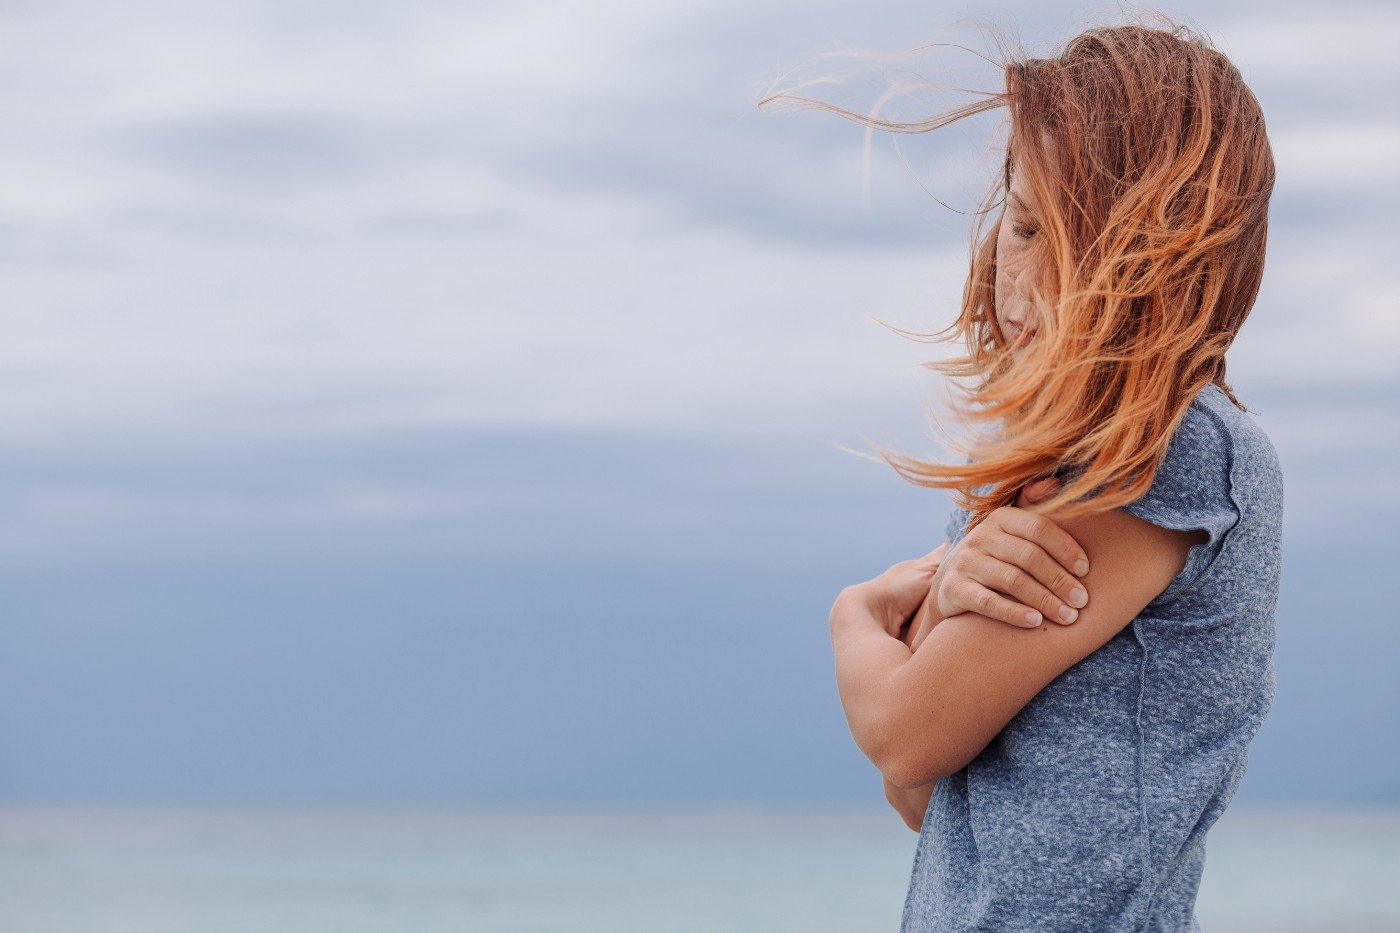 Sad woman in a dusty blue shirt with auburn hair covering most of her face, arms crossed, on the beach on a blustery day